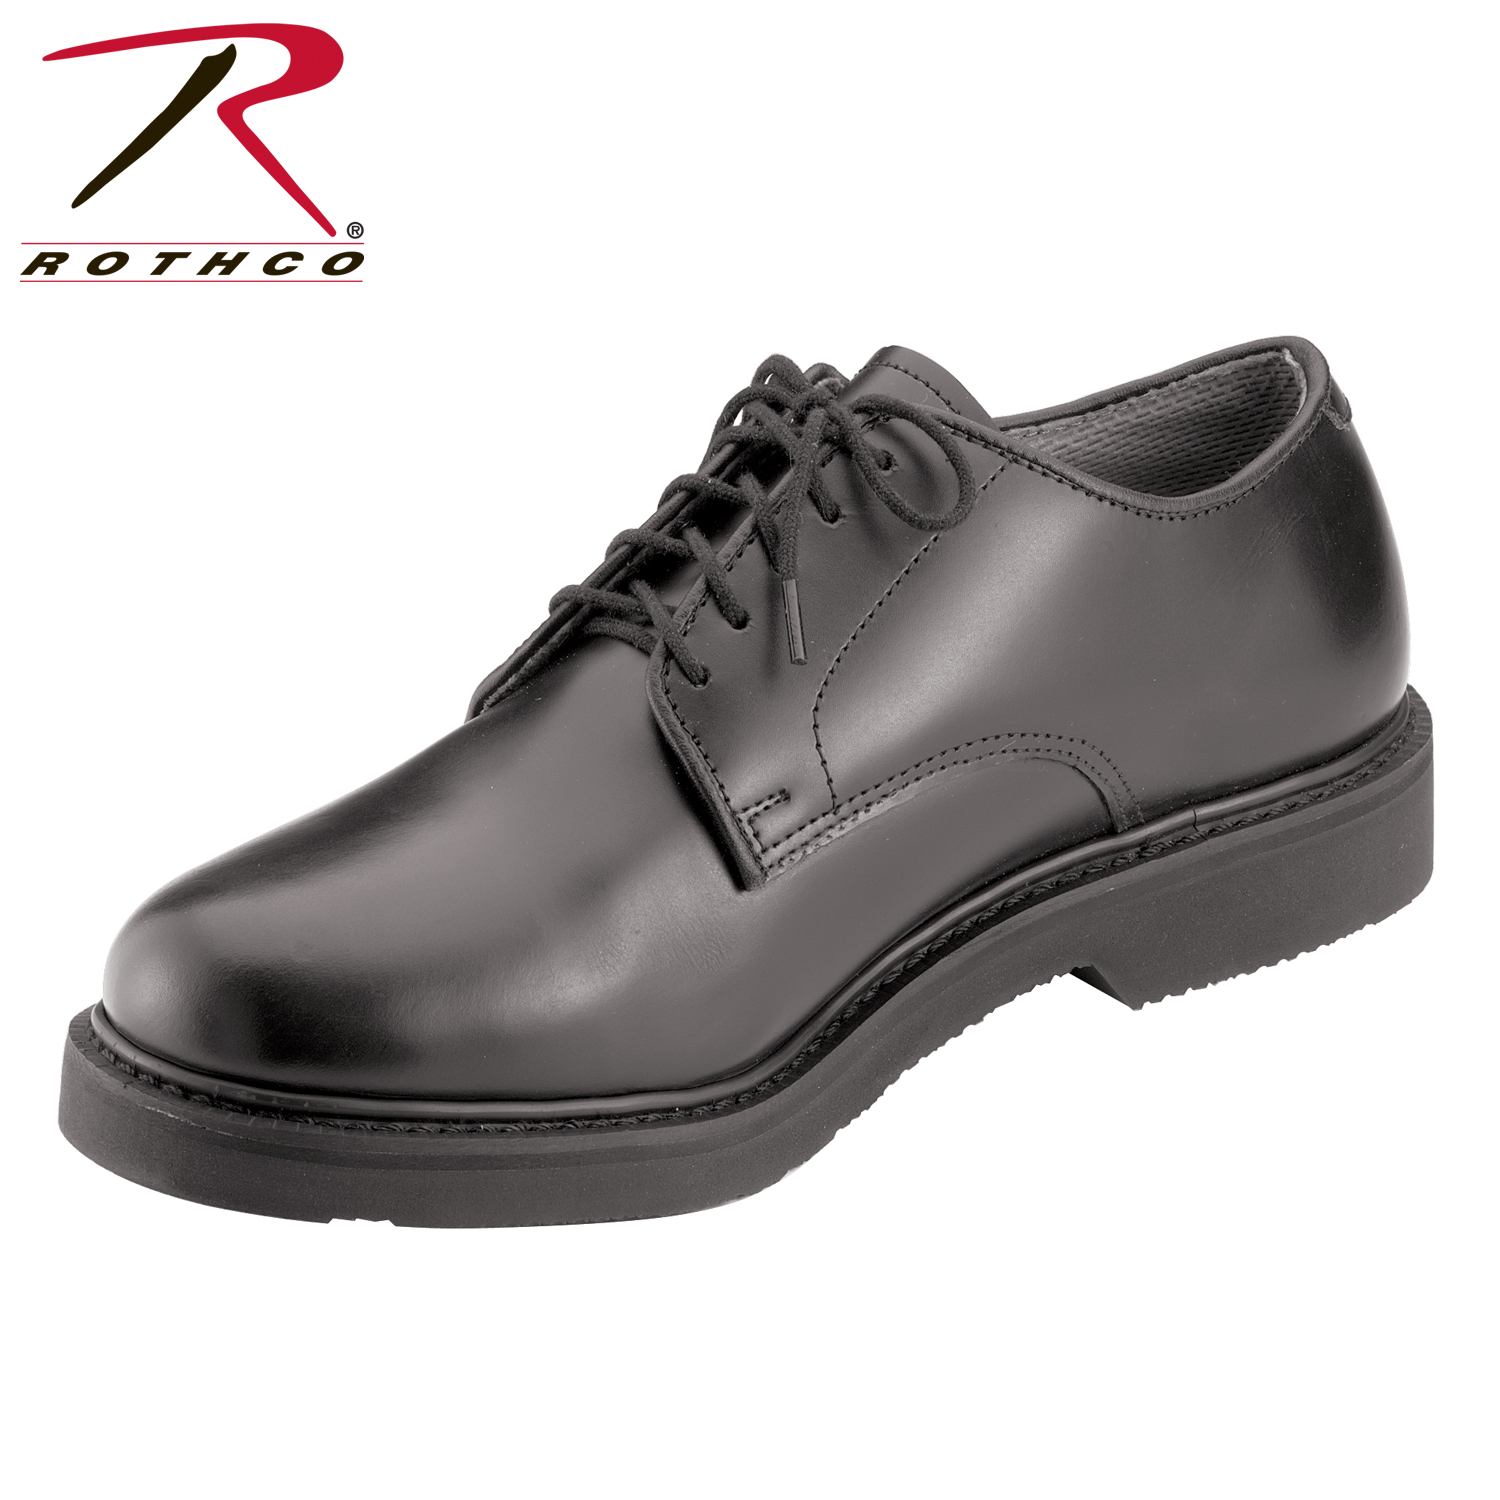 Shoe And Uniform 47